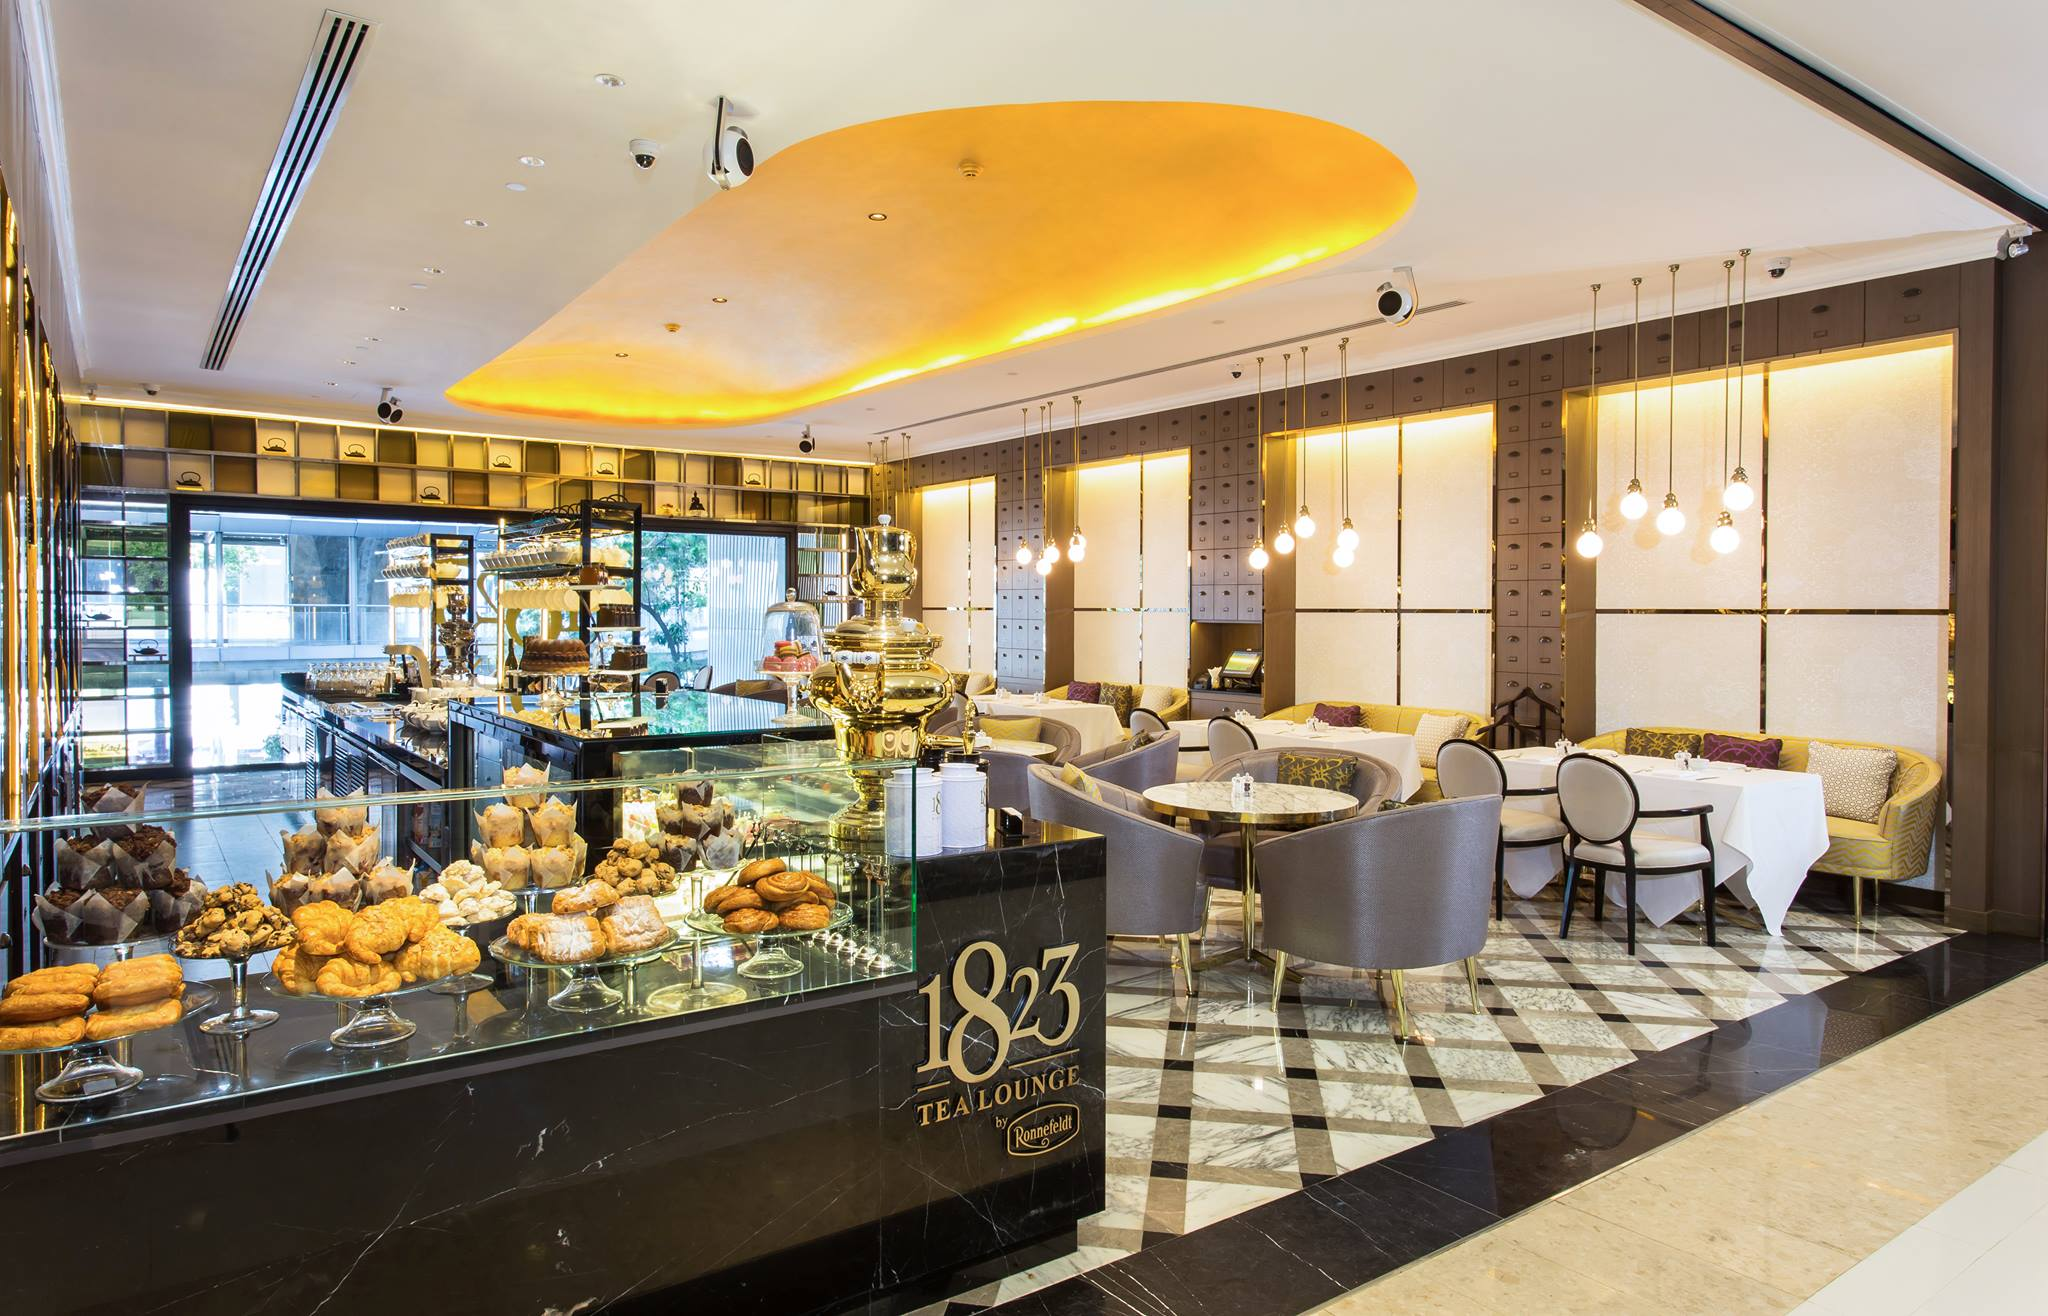 1823 Tea Lounge & Boutique by Ronnefeldt Gaysorn Village 曼谷下午茶